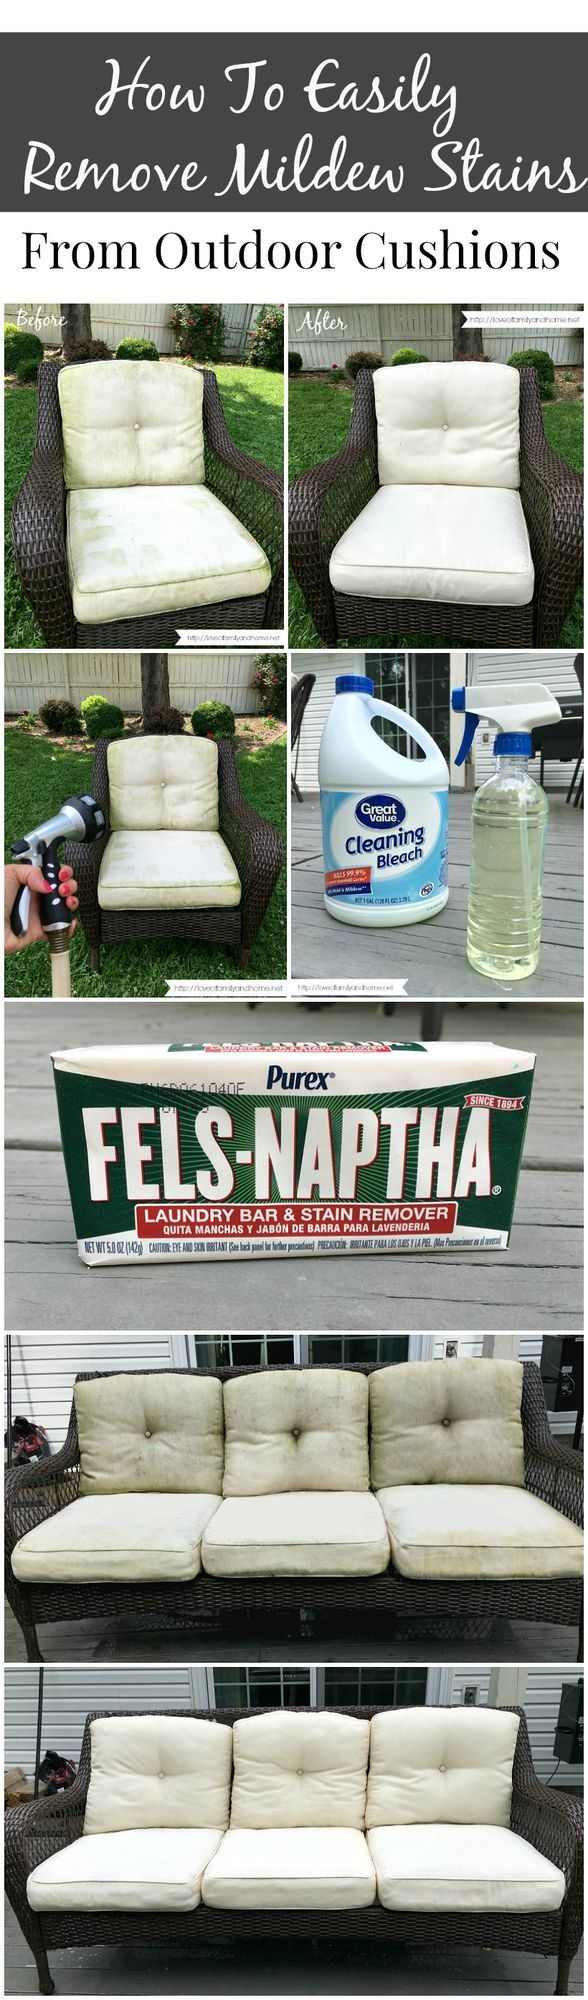 Outdoor Cushions, How To Remove Mold Spots From Outdoor Cushions